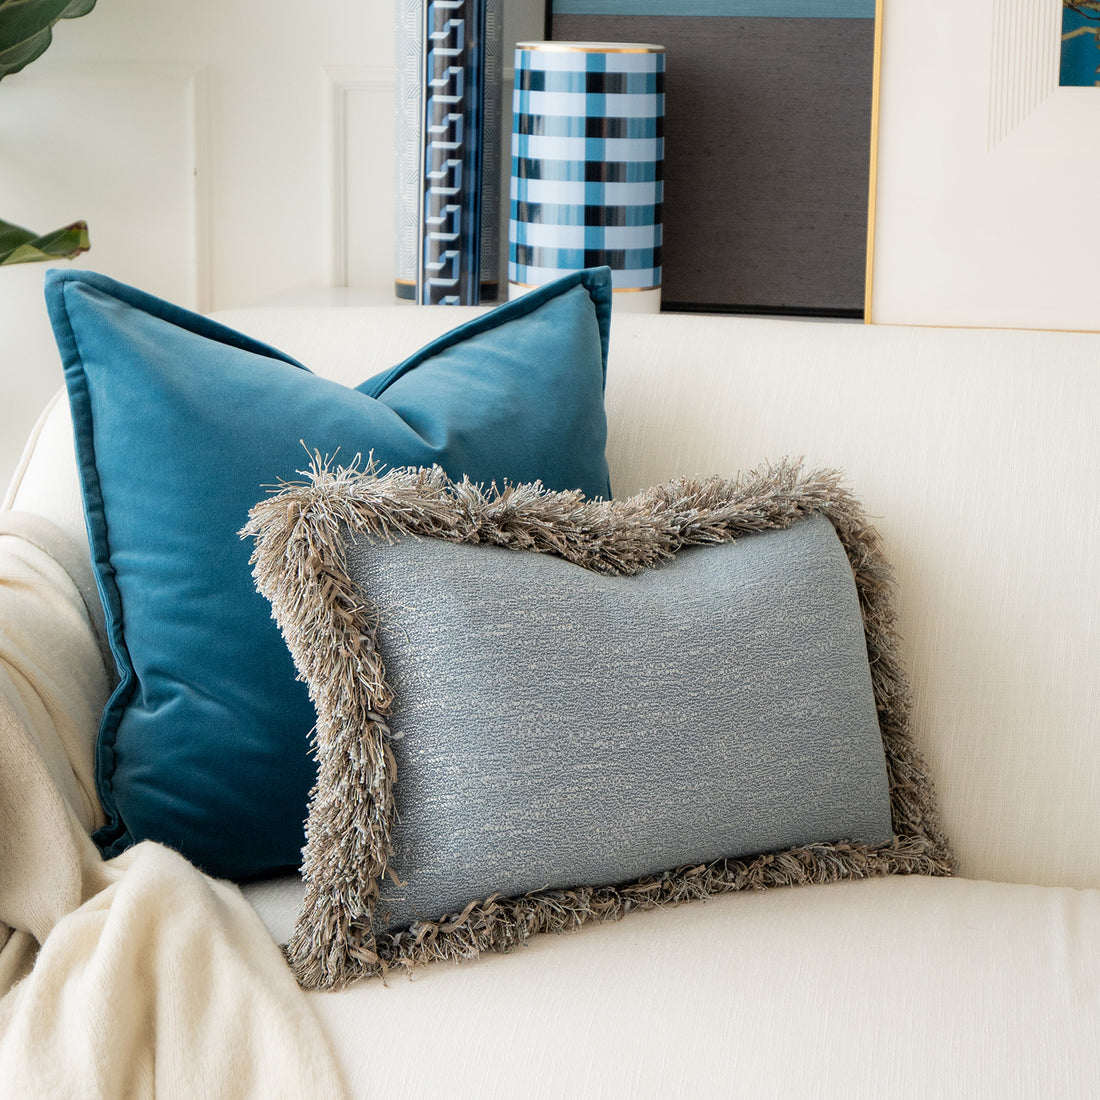 DONNA MATISSE II Decorative Cushion